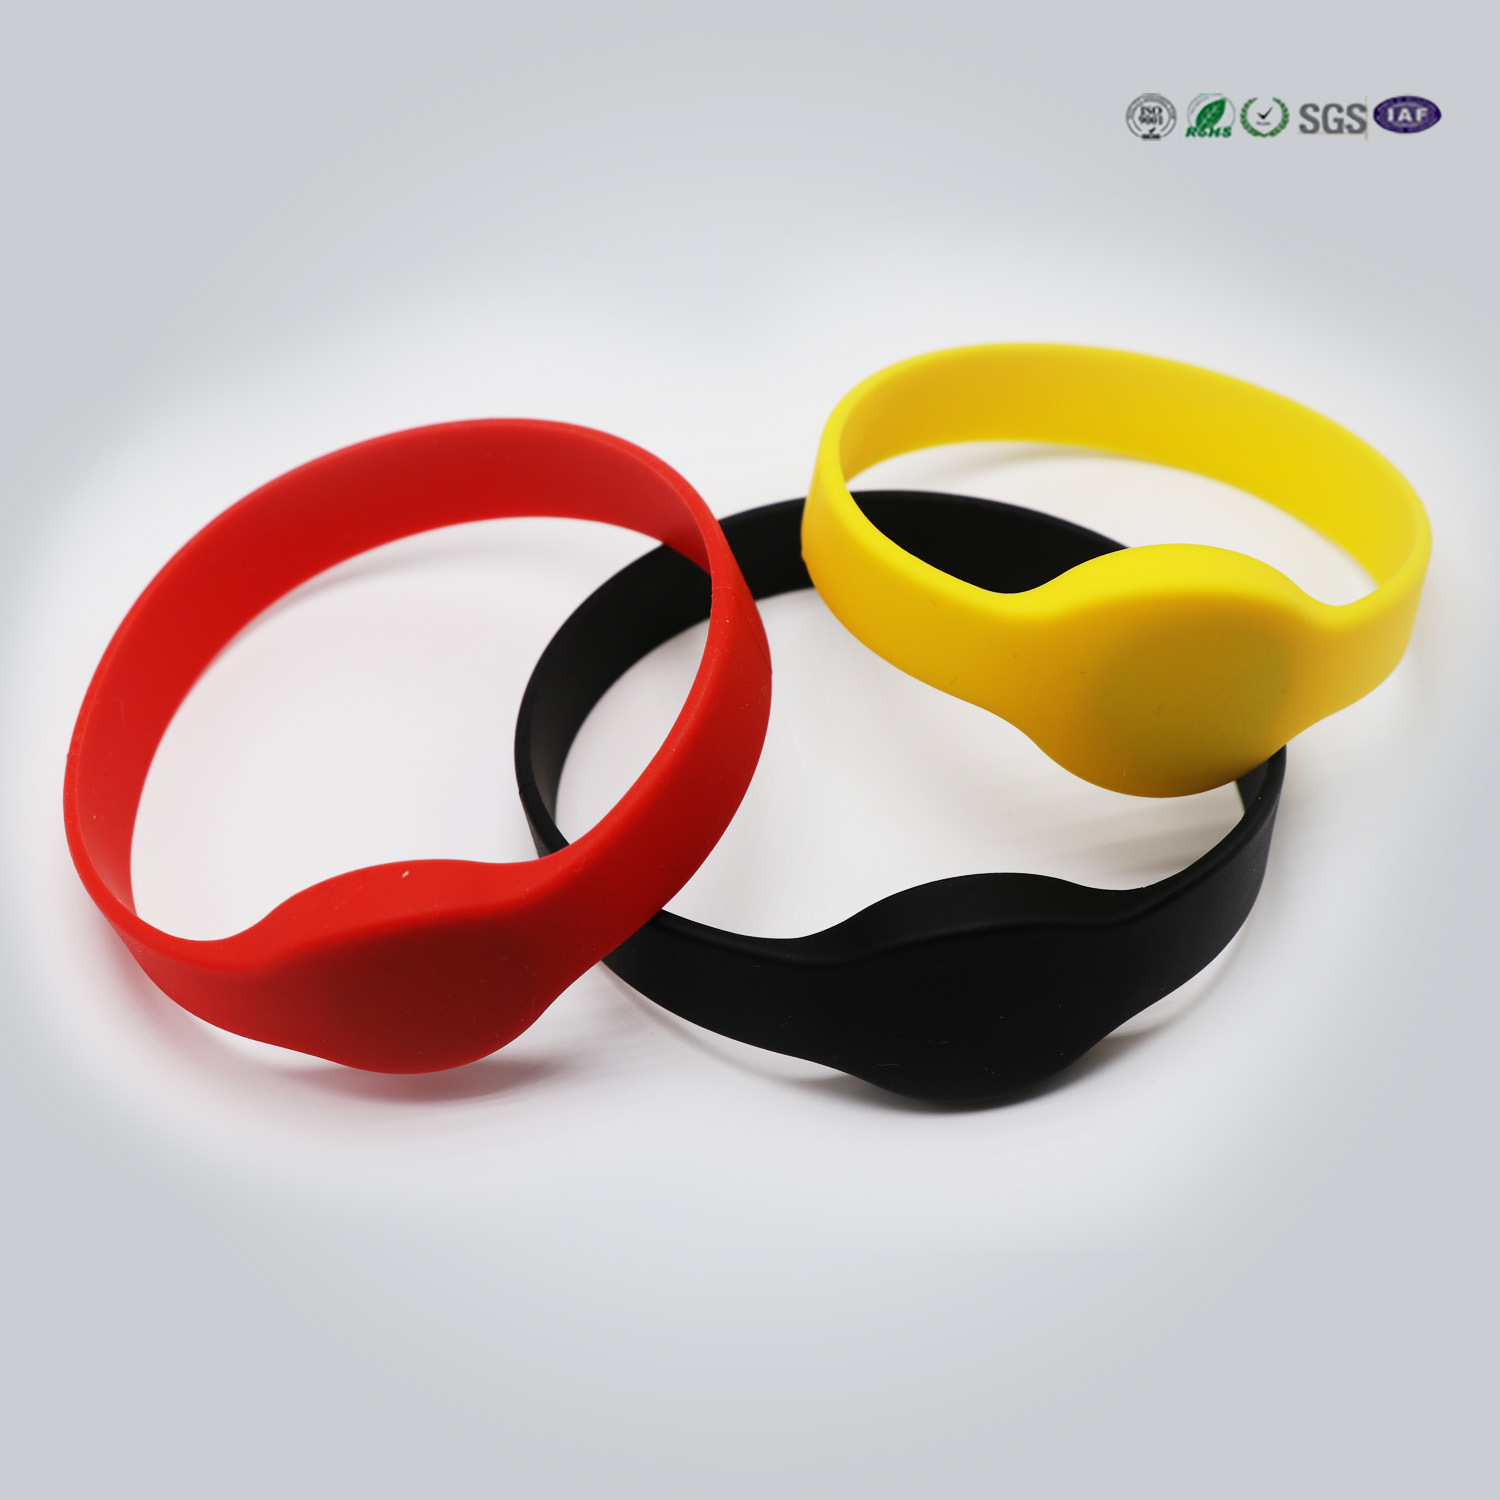 silicone bracelet waterproof hf wristbands uhf soft lf wristband rfid product slap china chip zslxvnpfqurf pvc